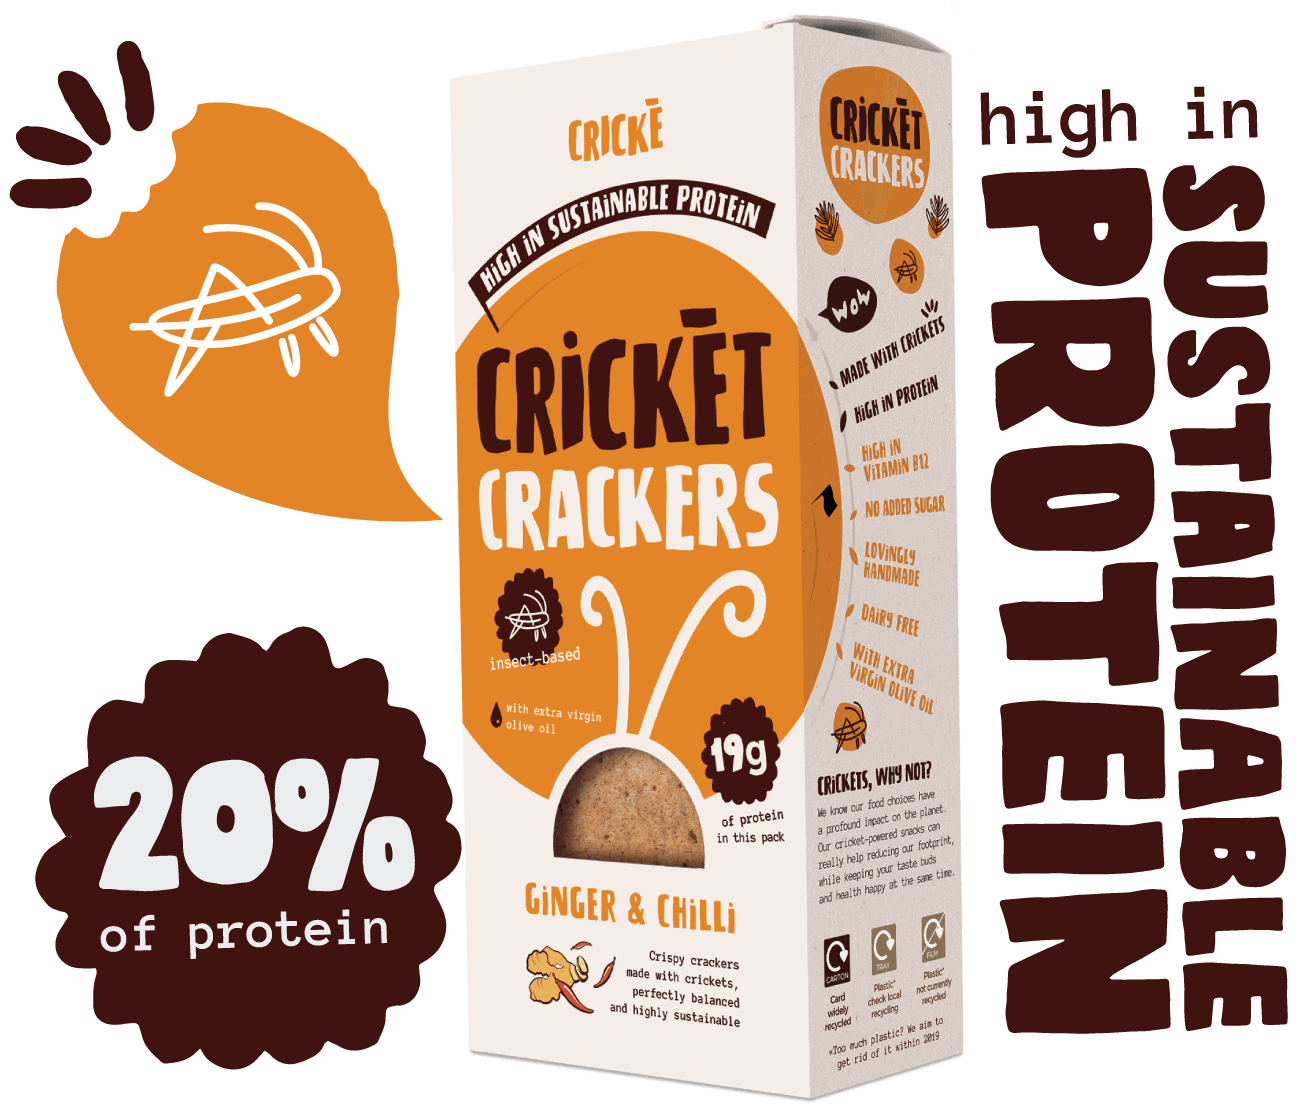 Cricke products are the best gateway to edible insects